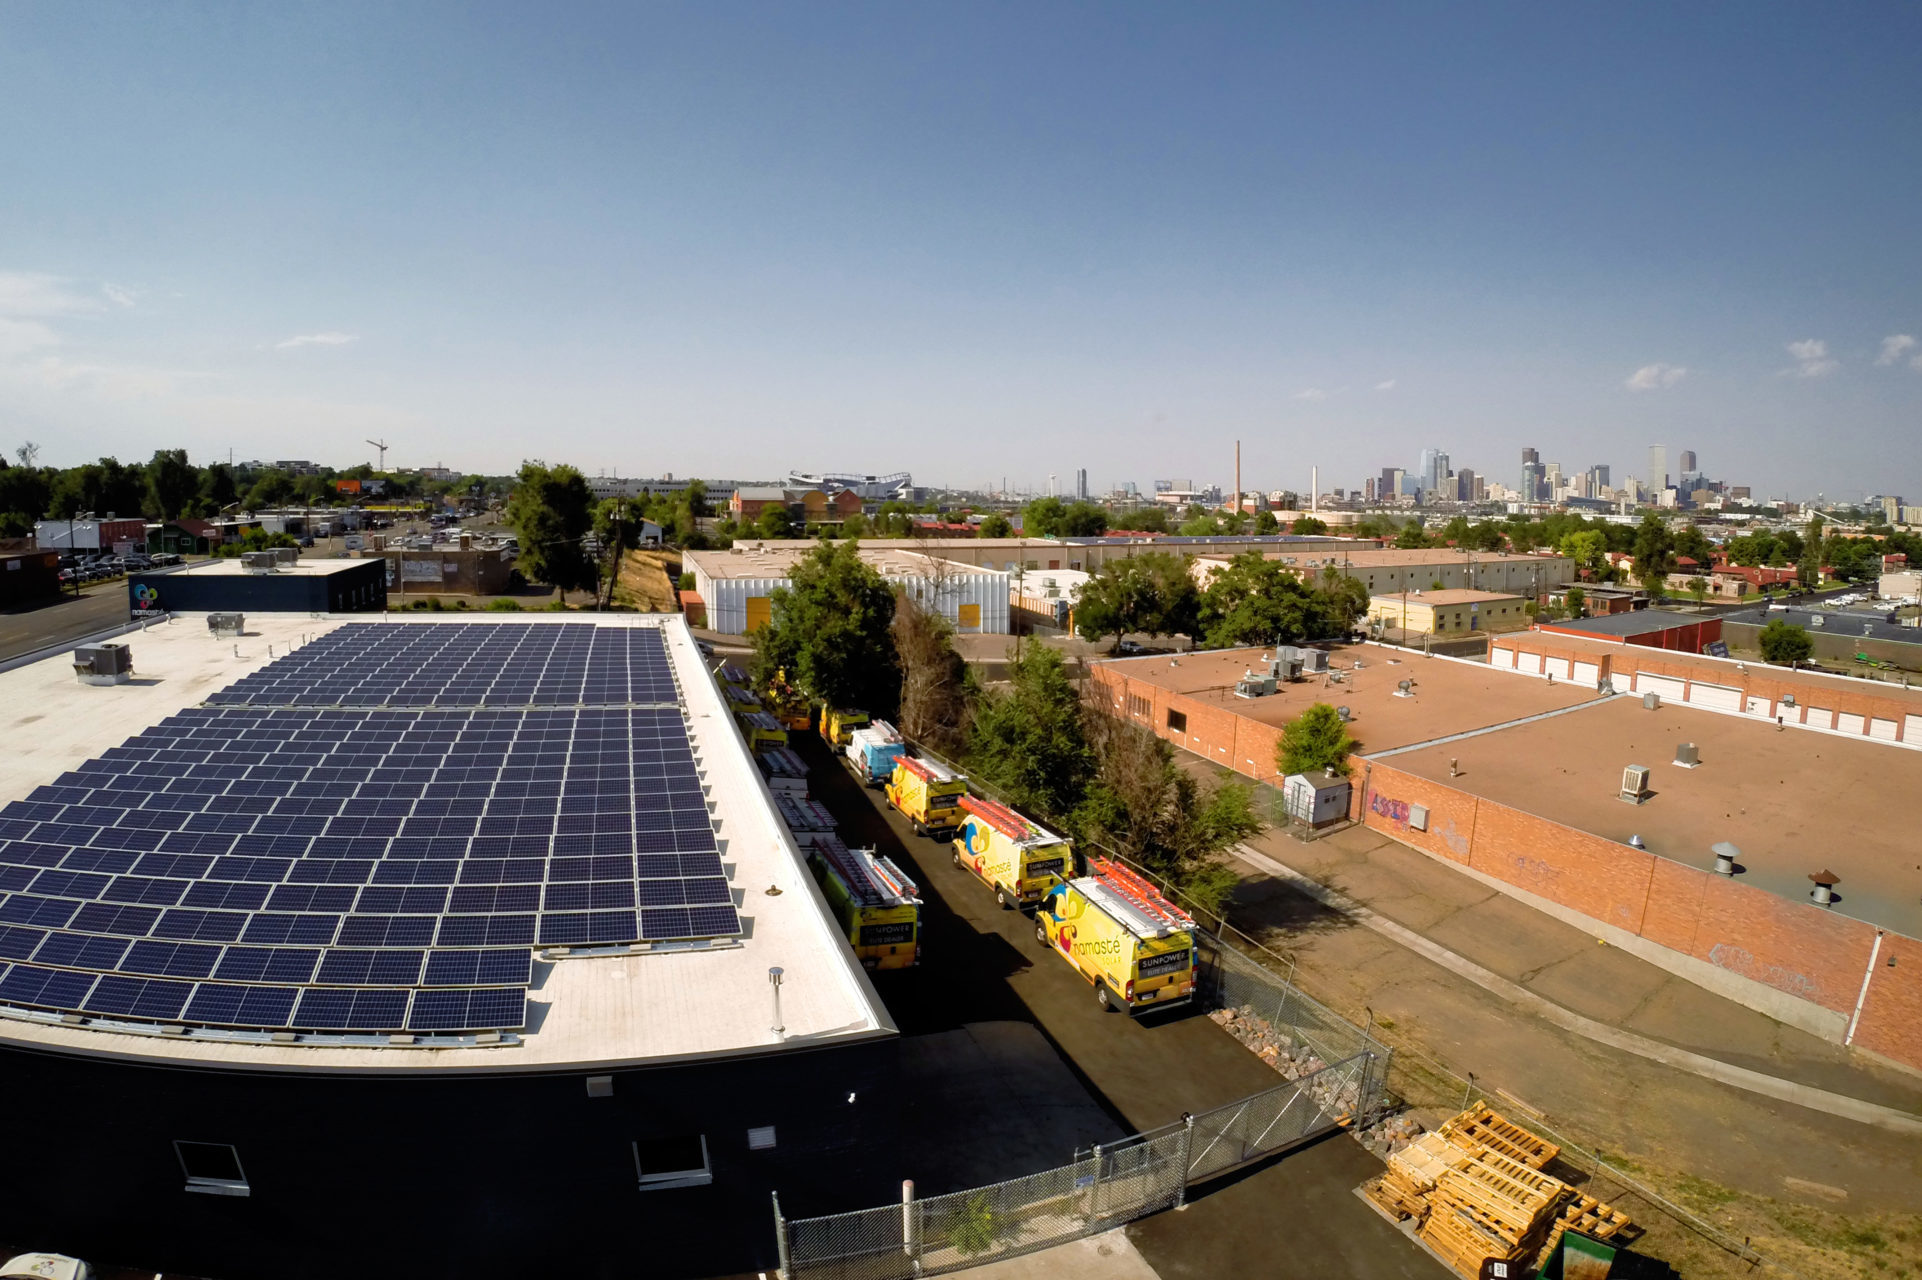 commercial solar panel installation in denver with namaste solar yellow vans